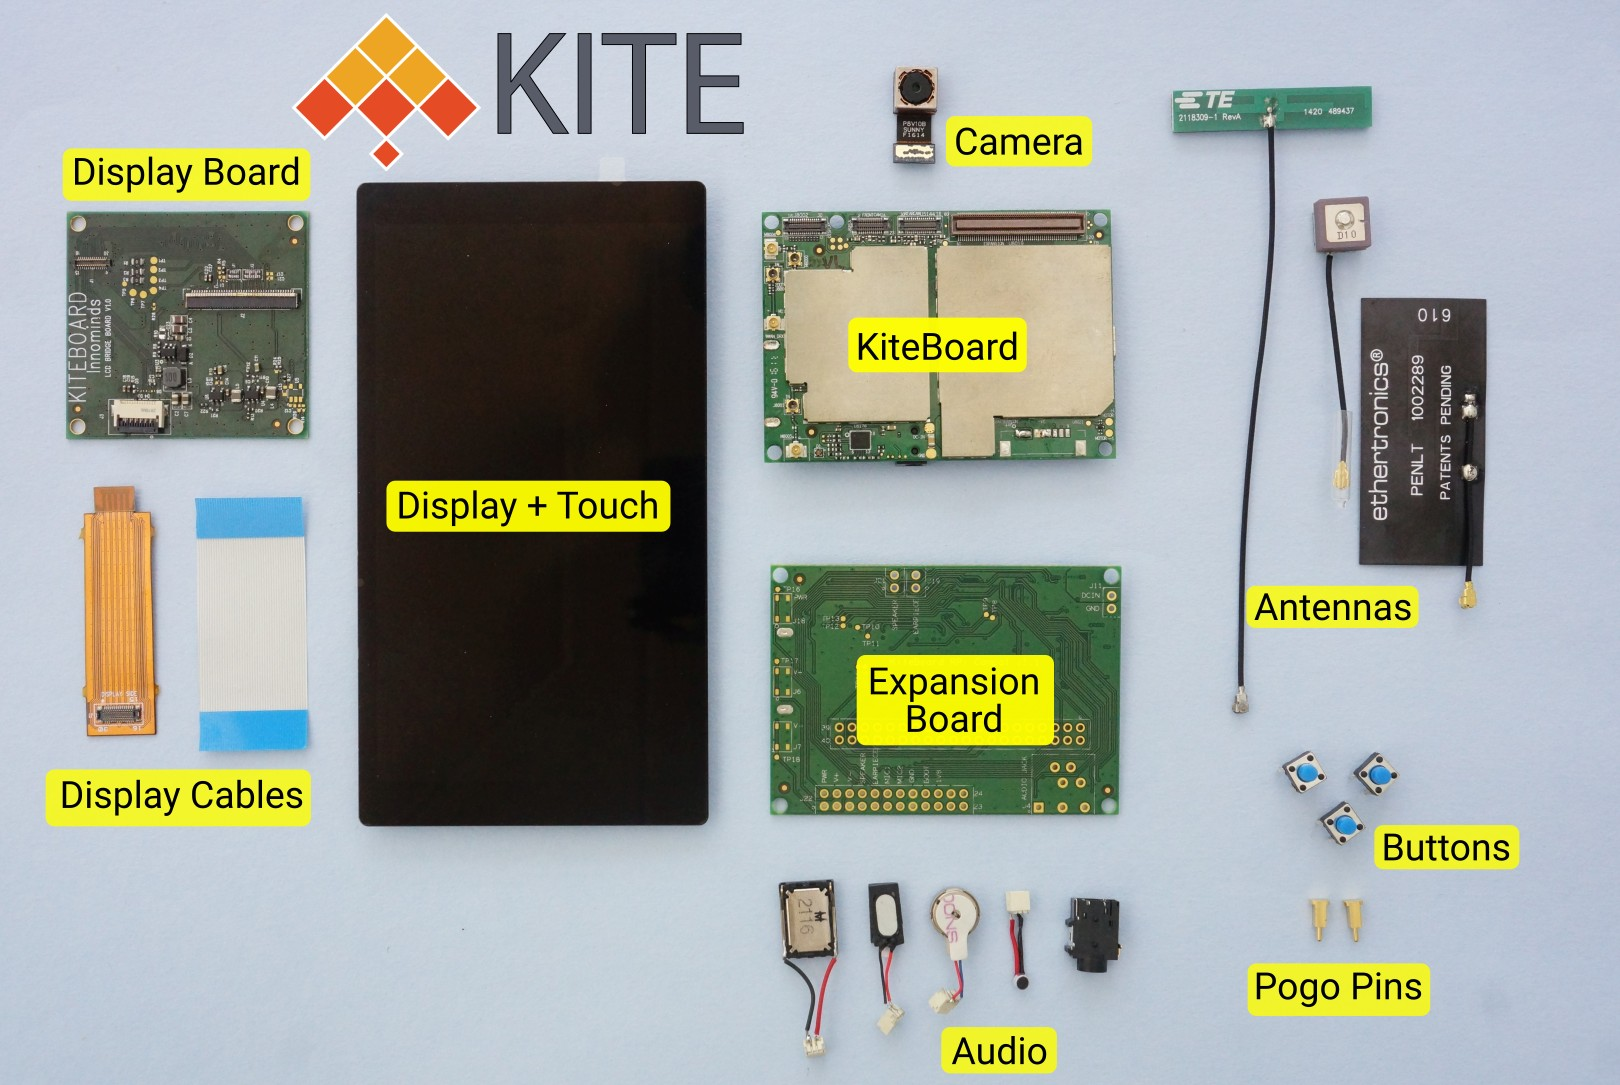 Building Poorna Your First Kitephone Option Than Store Bought Flexible Circuit Boards Give It A Try The Kiteboard Is Brains Of Kit I Find Useful To Think As Motherboard For Phone Based On Qualcomm Msm8916